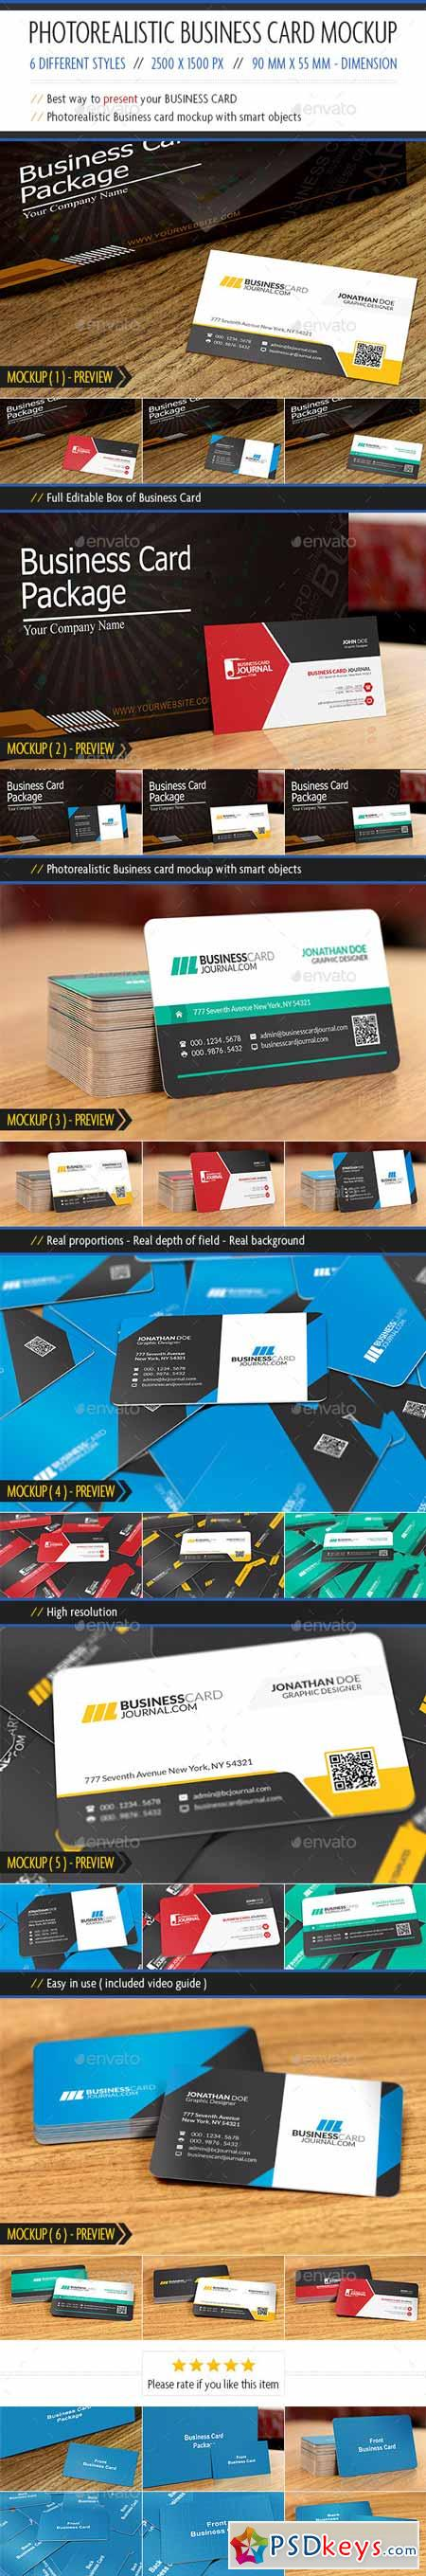 Photorealistic Business Card Mockup 10685263